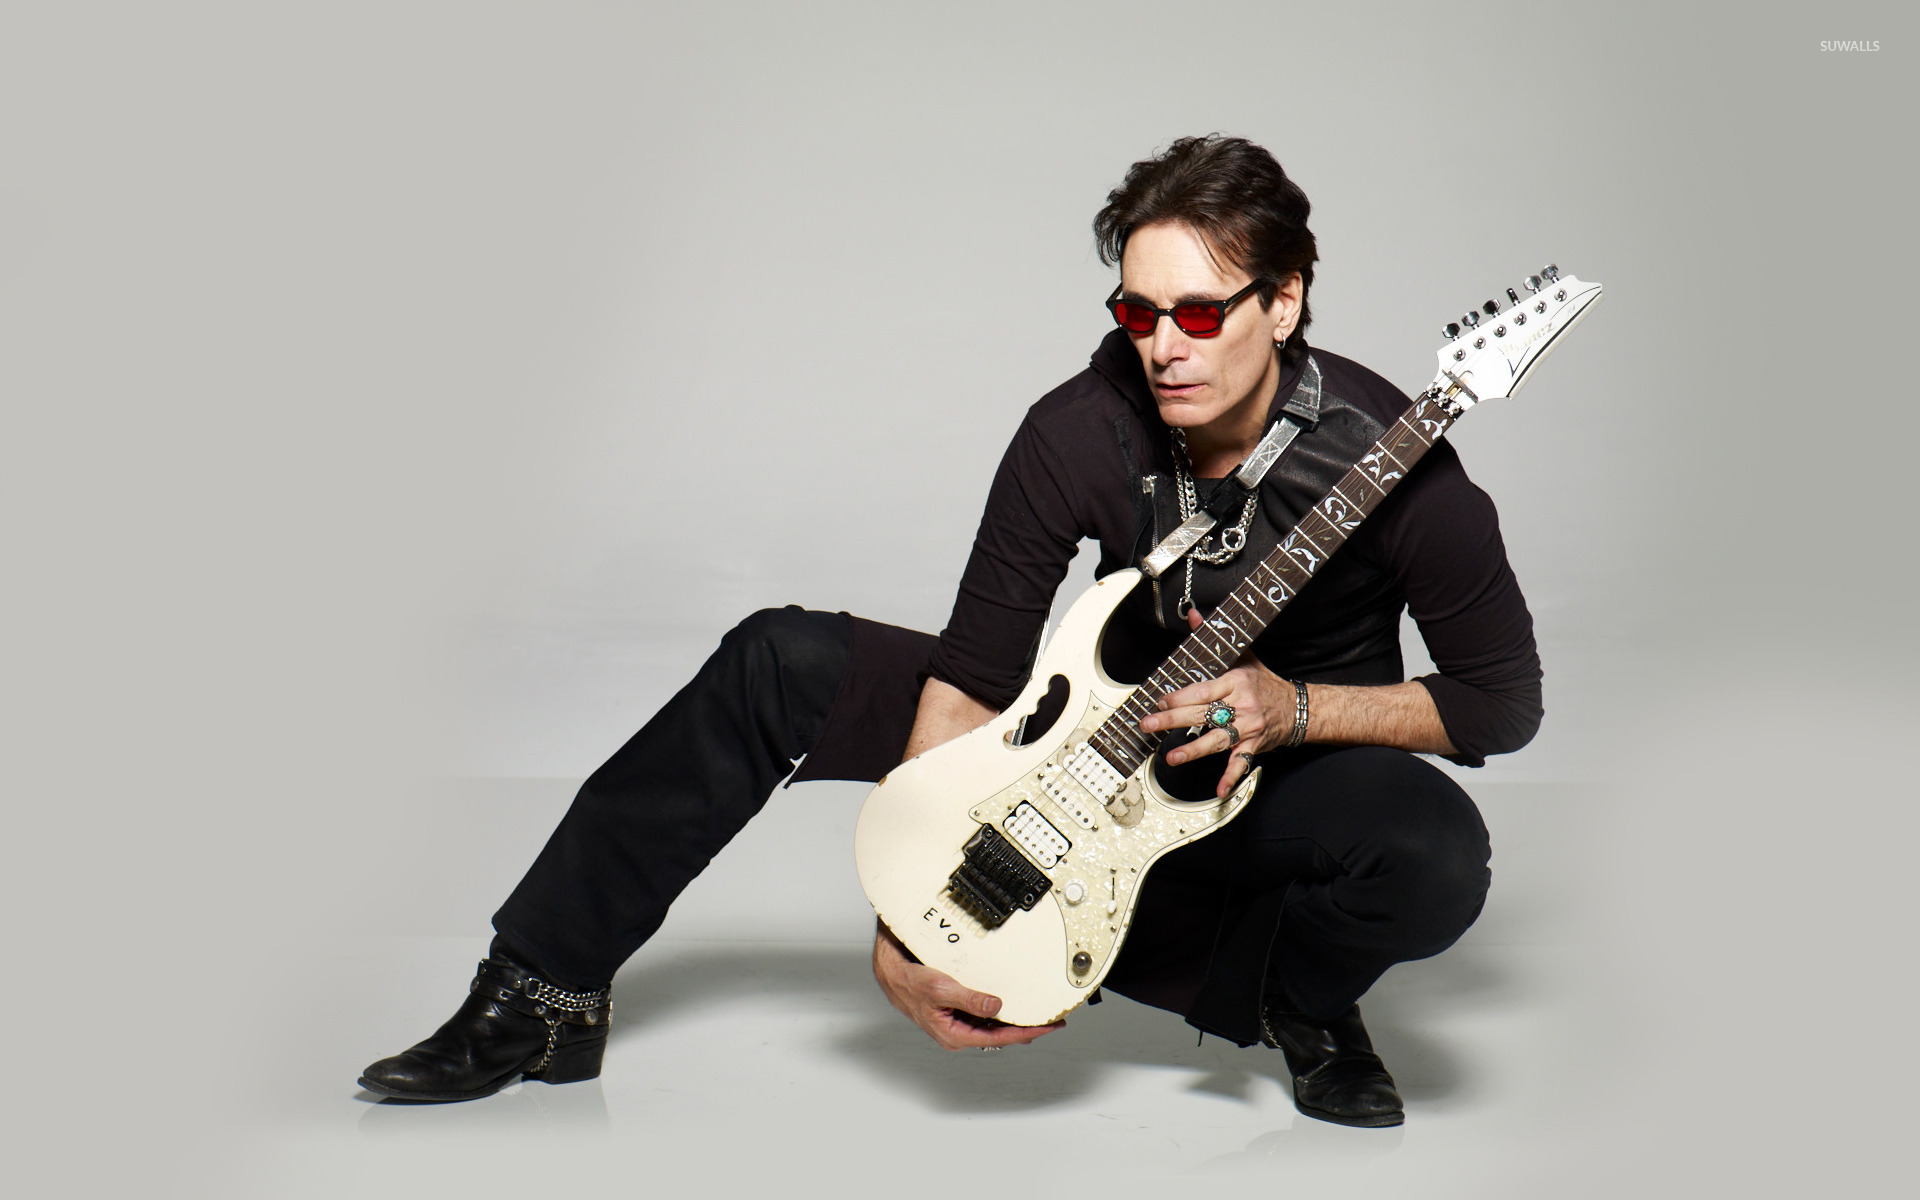 Steve Vai 3 Wallpaper Music Wallpapers 20991